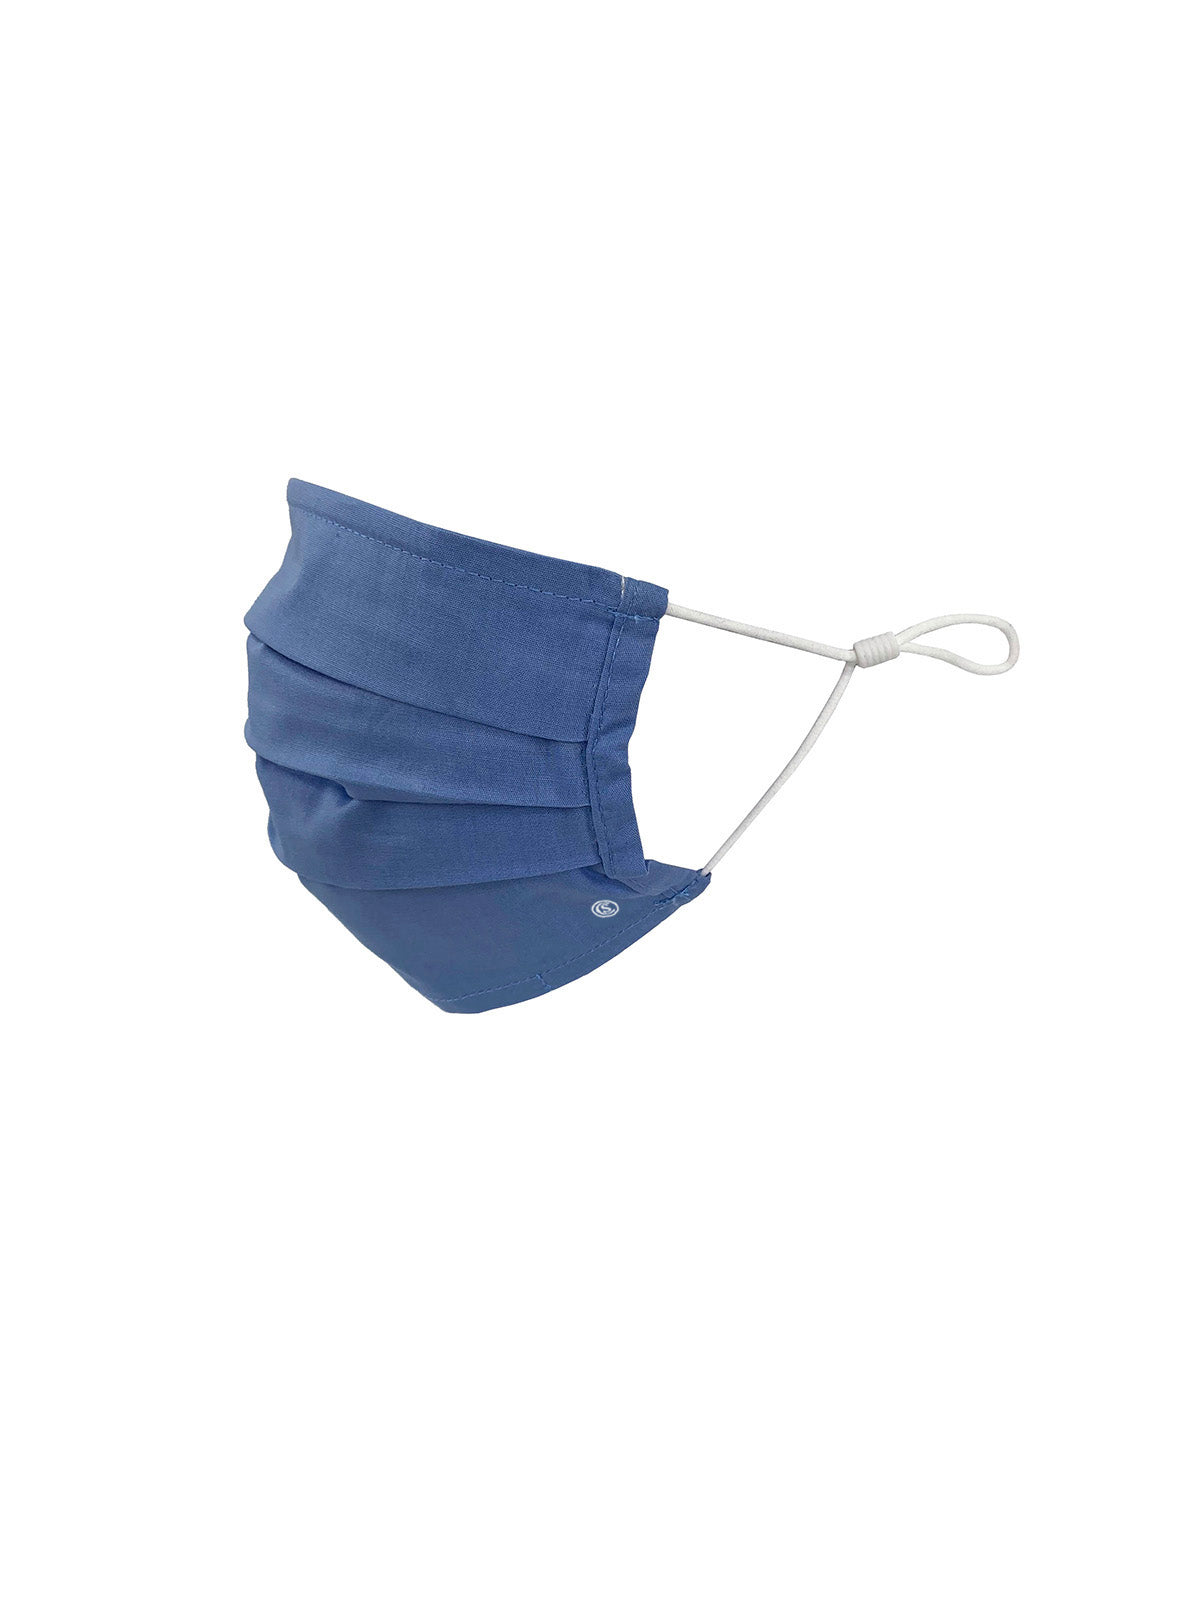 Essential Pleated Kids Face Mask 6 Pack-Blue Solids